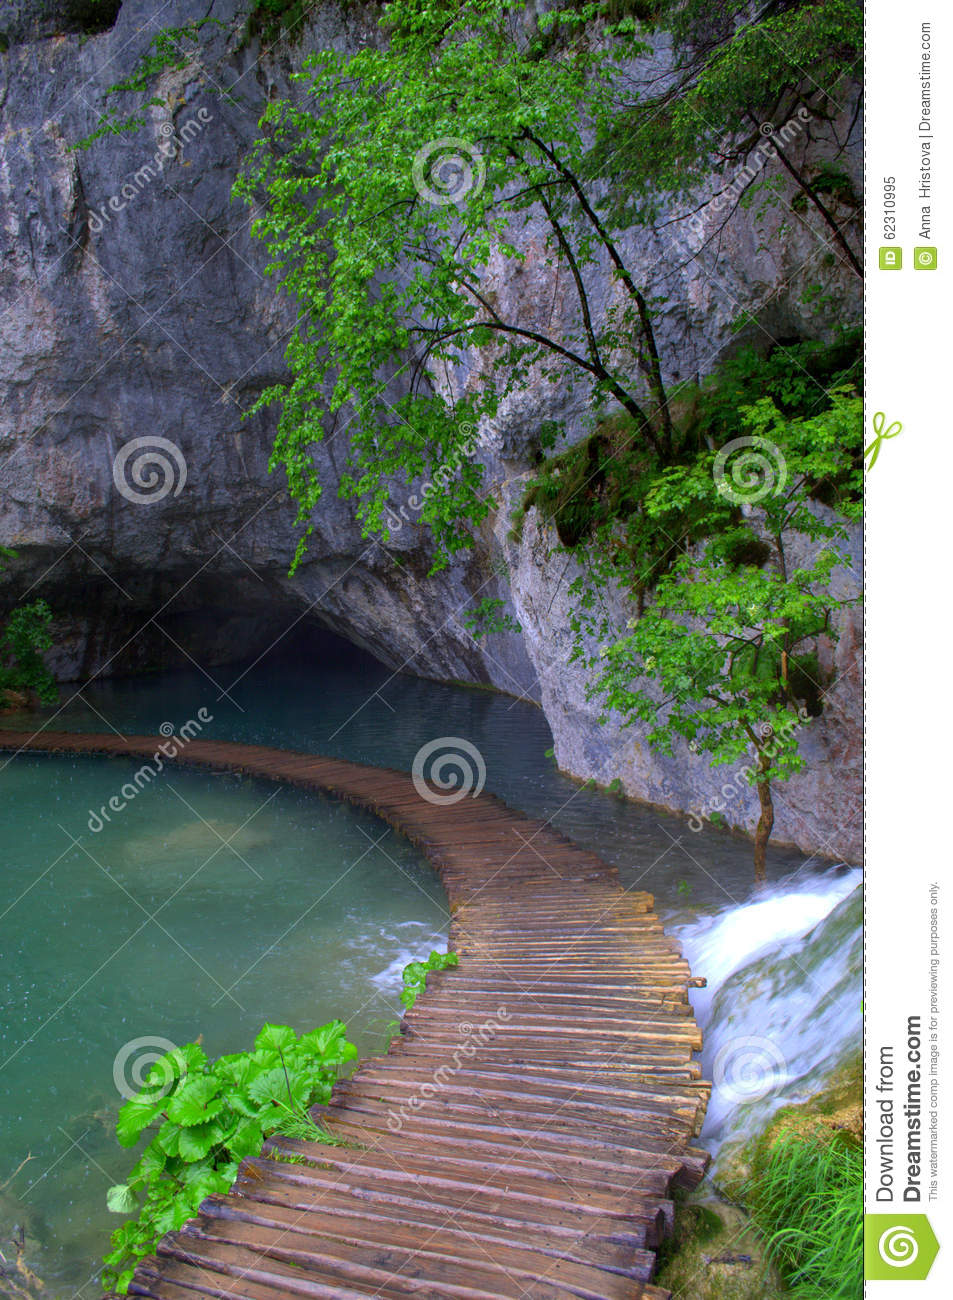 Wood boardwalk on lake stock image. Image of alley, nature ...